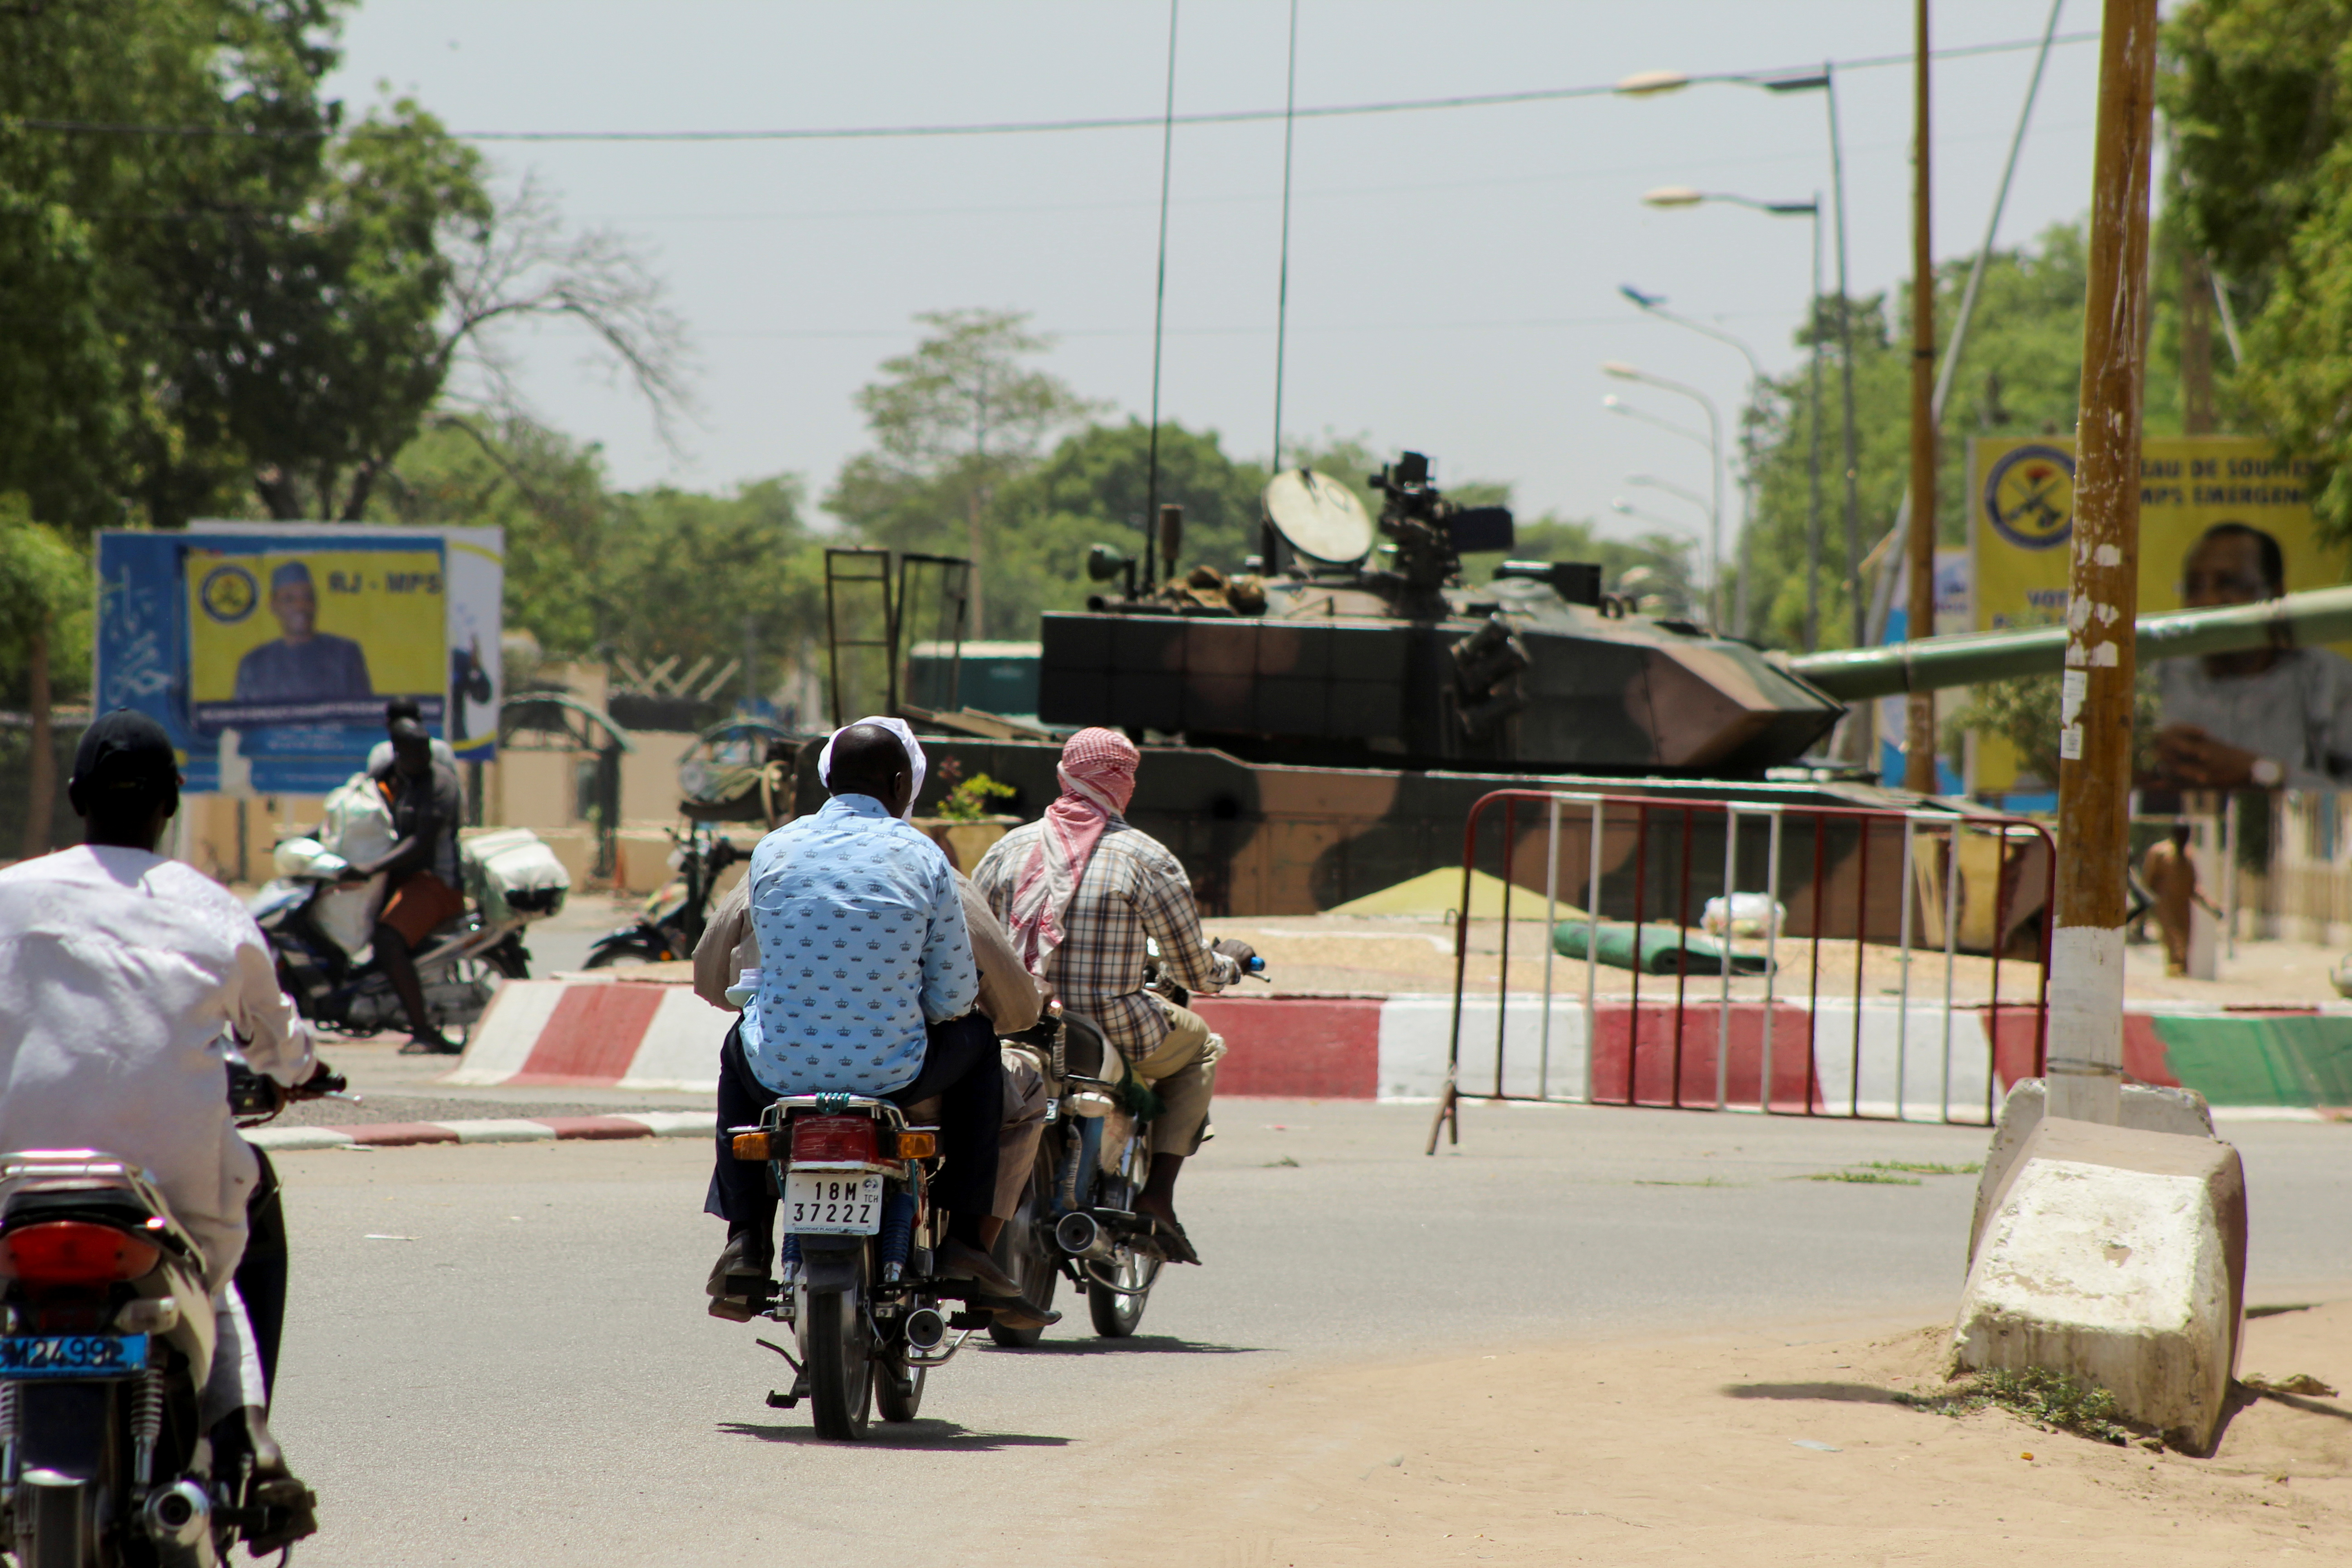 People drive past a Chad army tank near the presidential palace, after Chad's President Idriss Deby, who ruled the country for more than 30 years and was an important Western ally, was killed on the frontline in a battle against rebels in the north, in N'djamena, Chad  April 20, 2021.  REUTERS/Oredje Narcisse